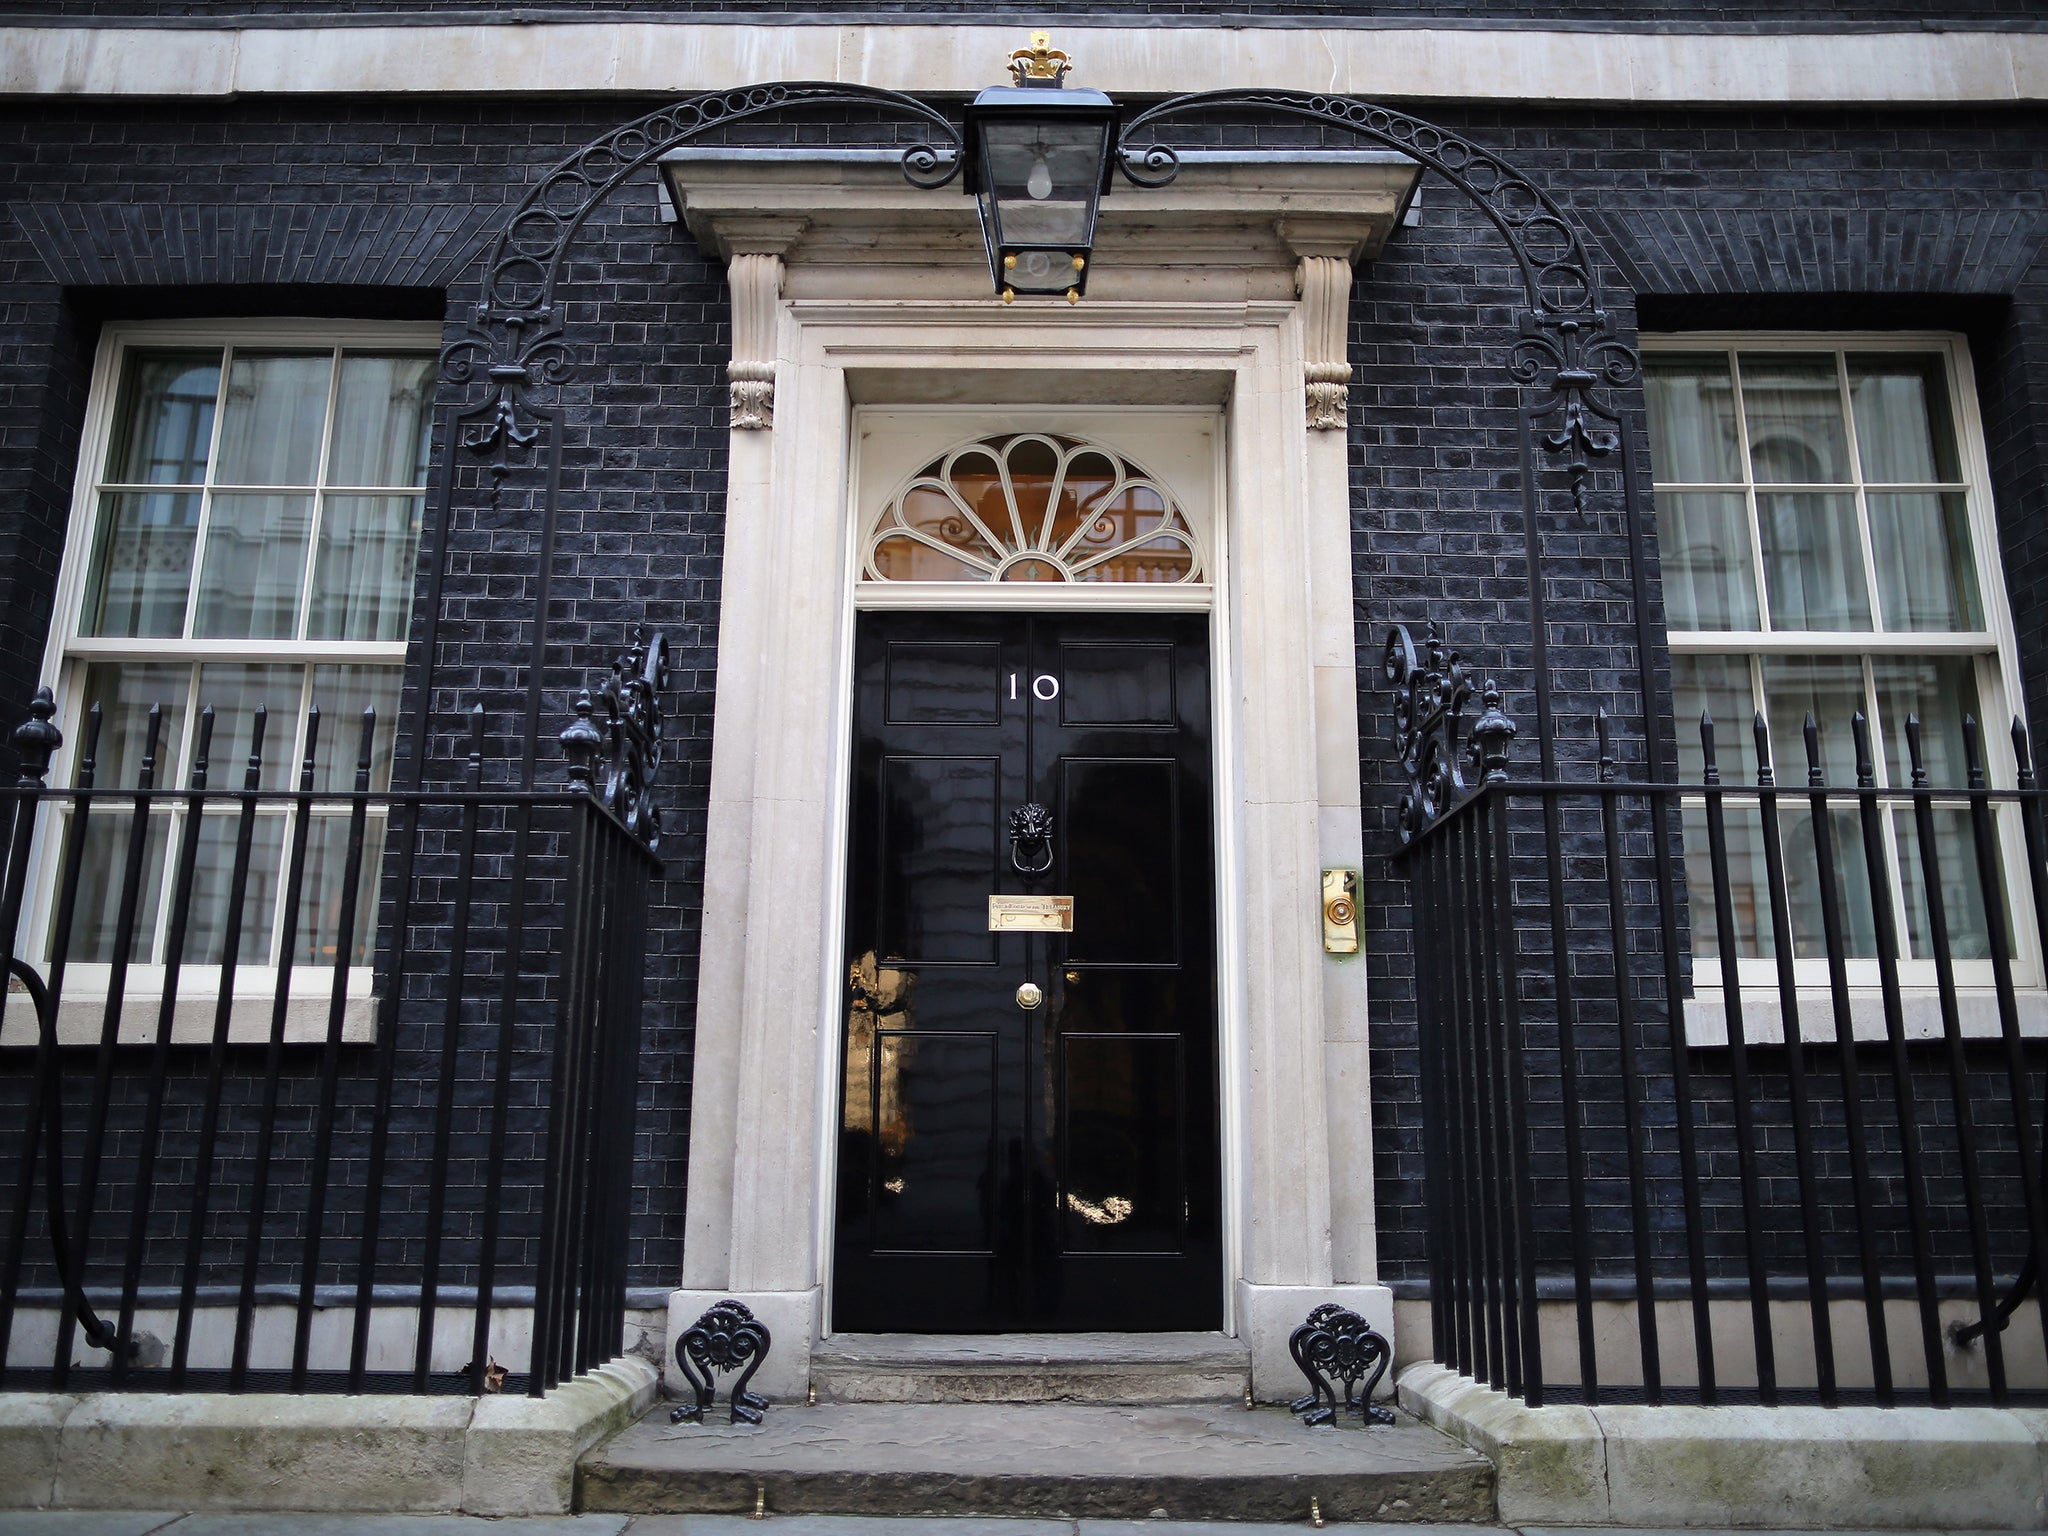 10 downing street take a rare glimpse inside the prime. Black Bedroom Furniture Sets. Home Design Ideas